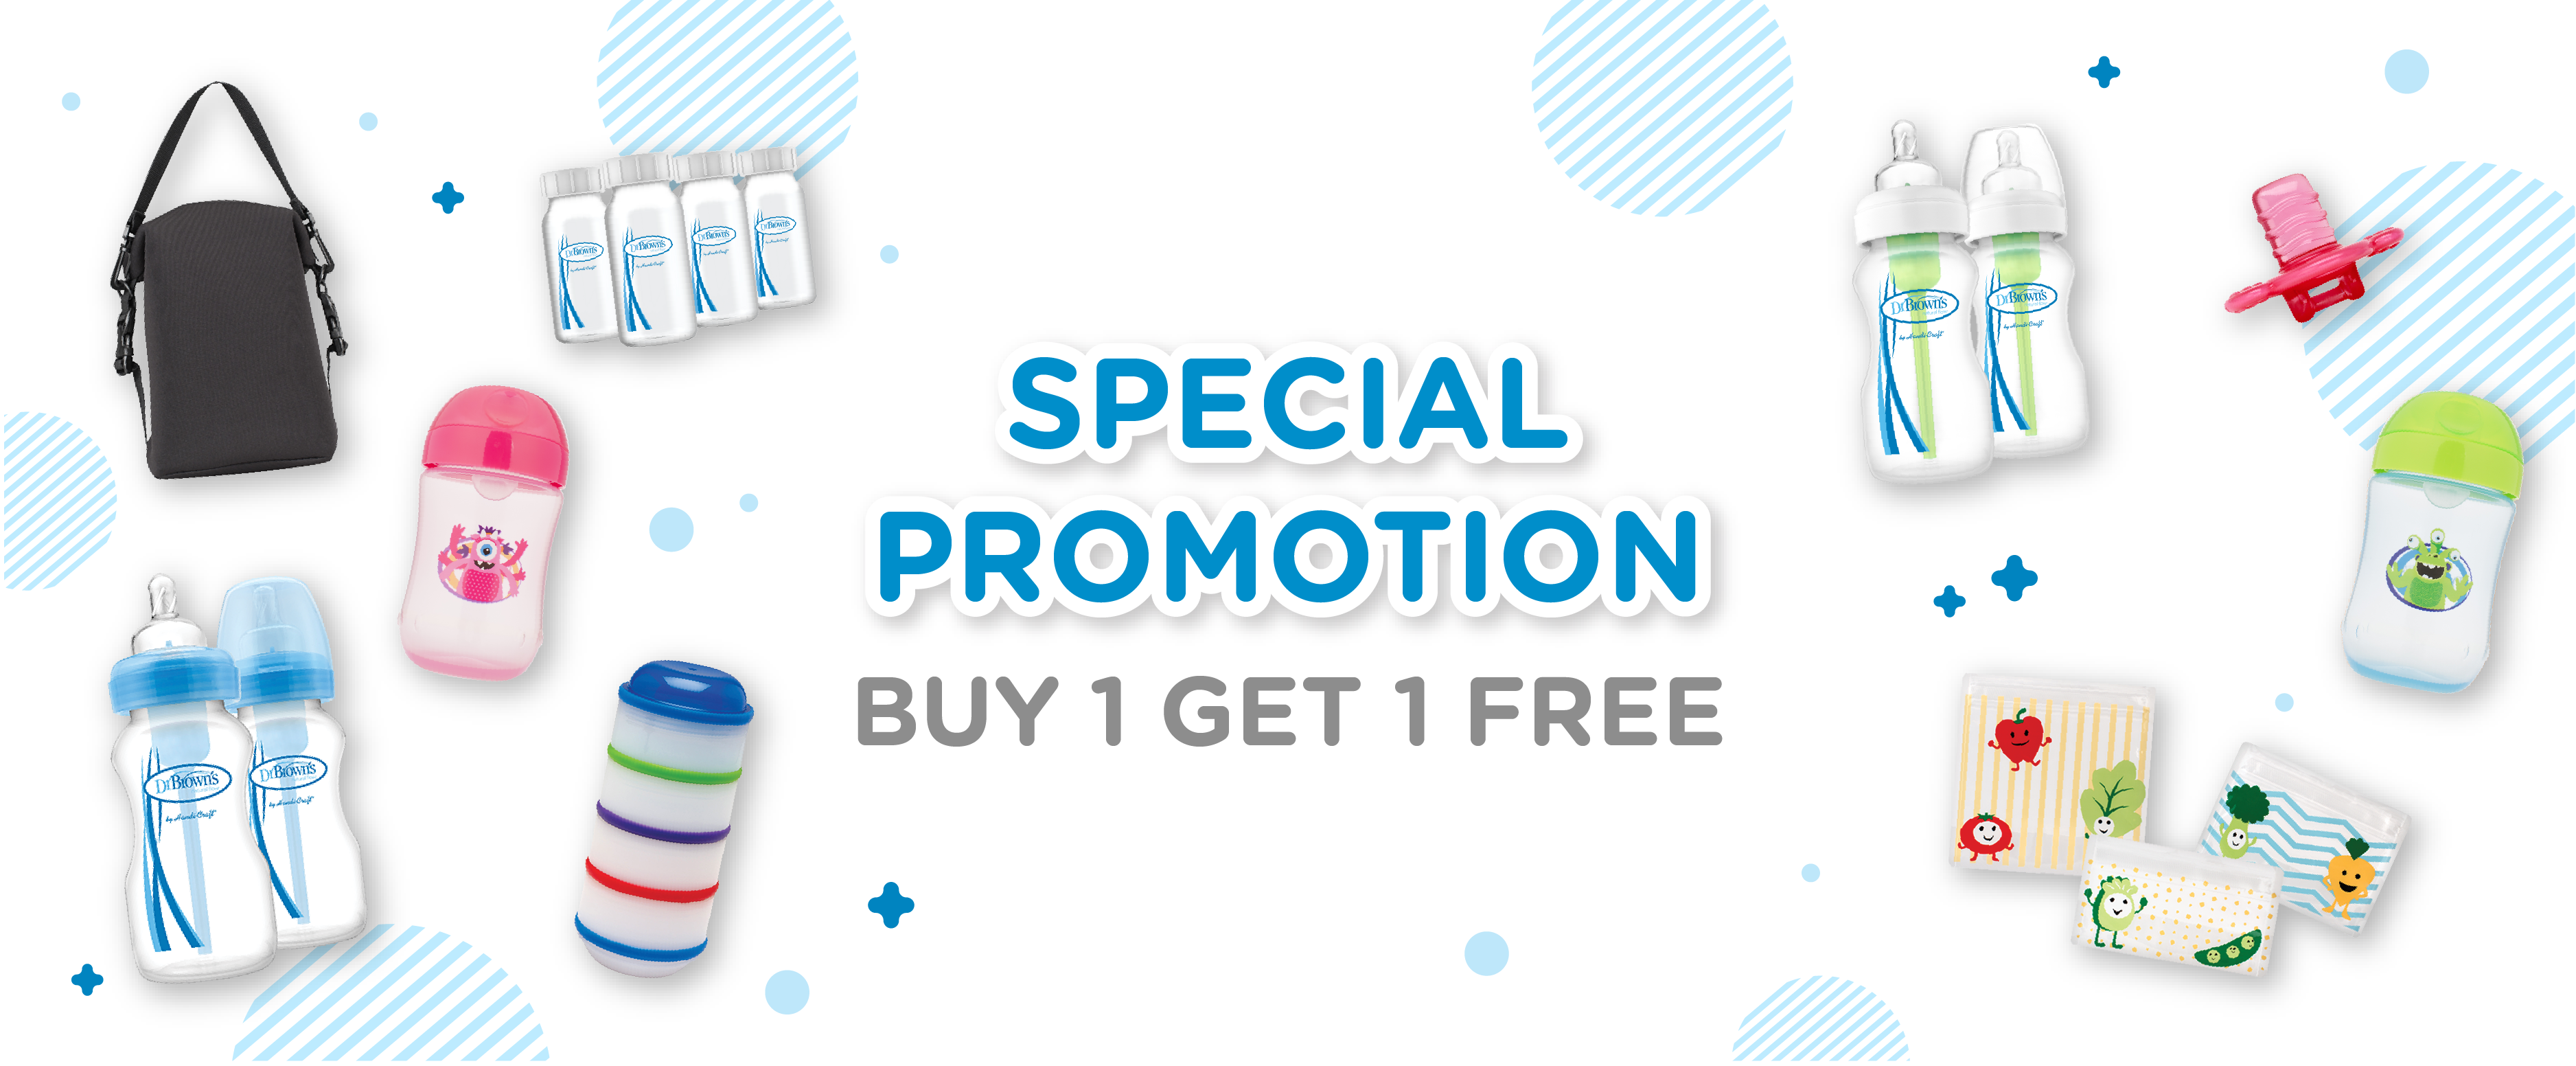 Dr. Brown's Buy 1 Get 1 Promotion